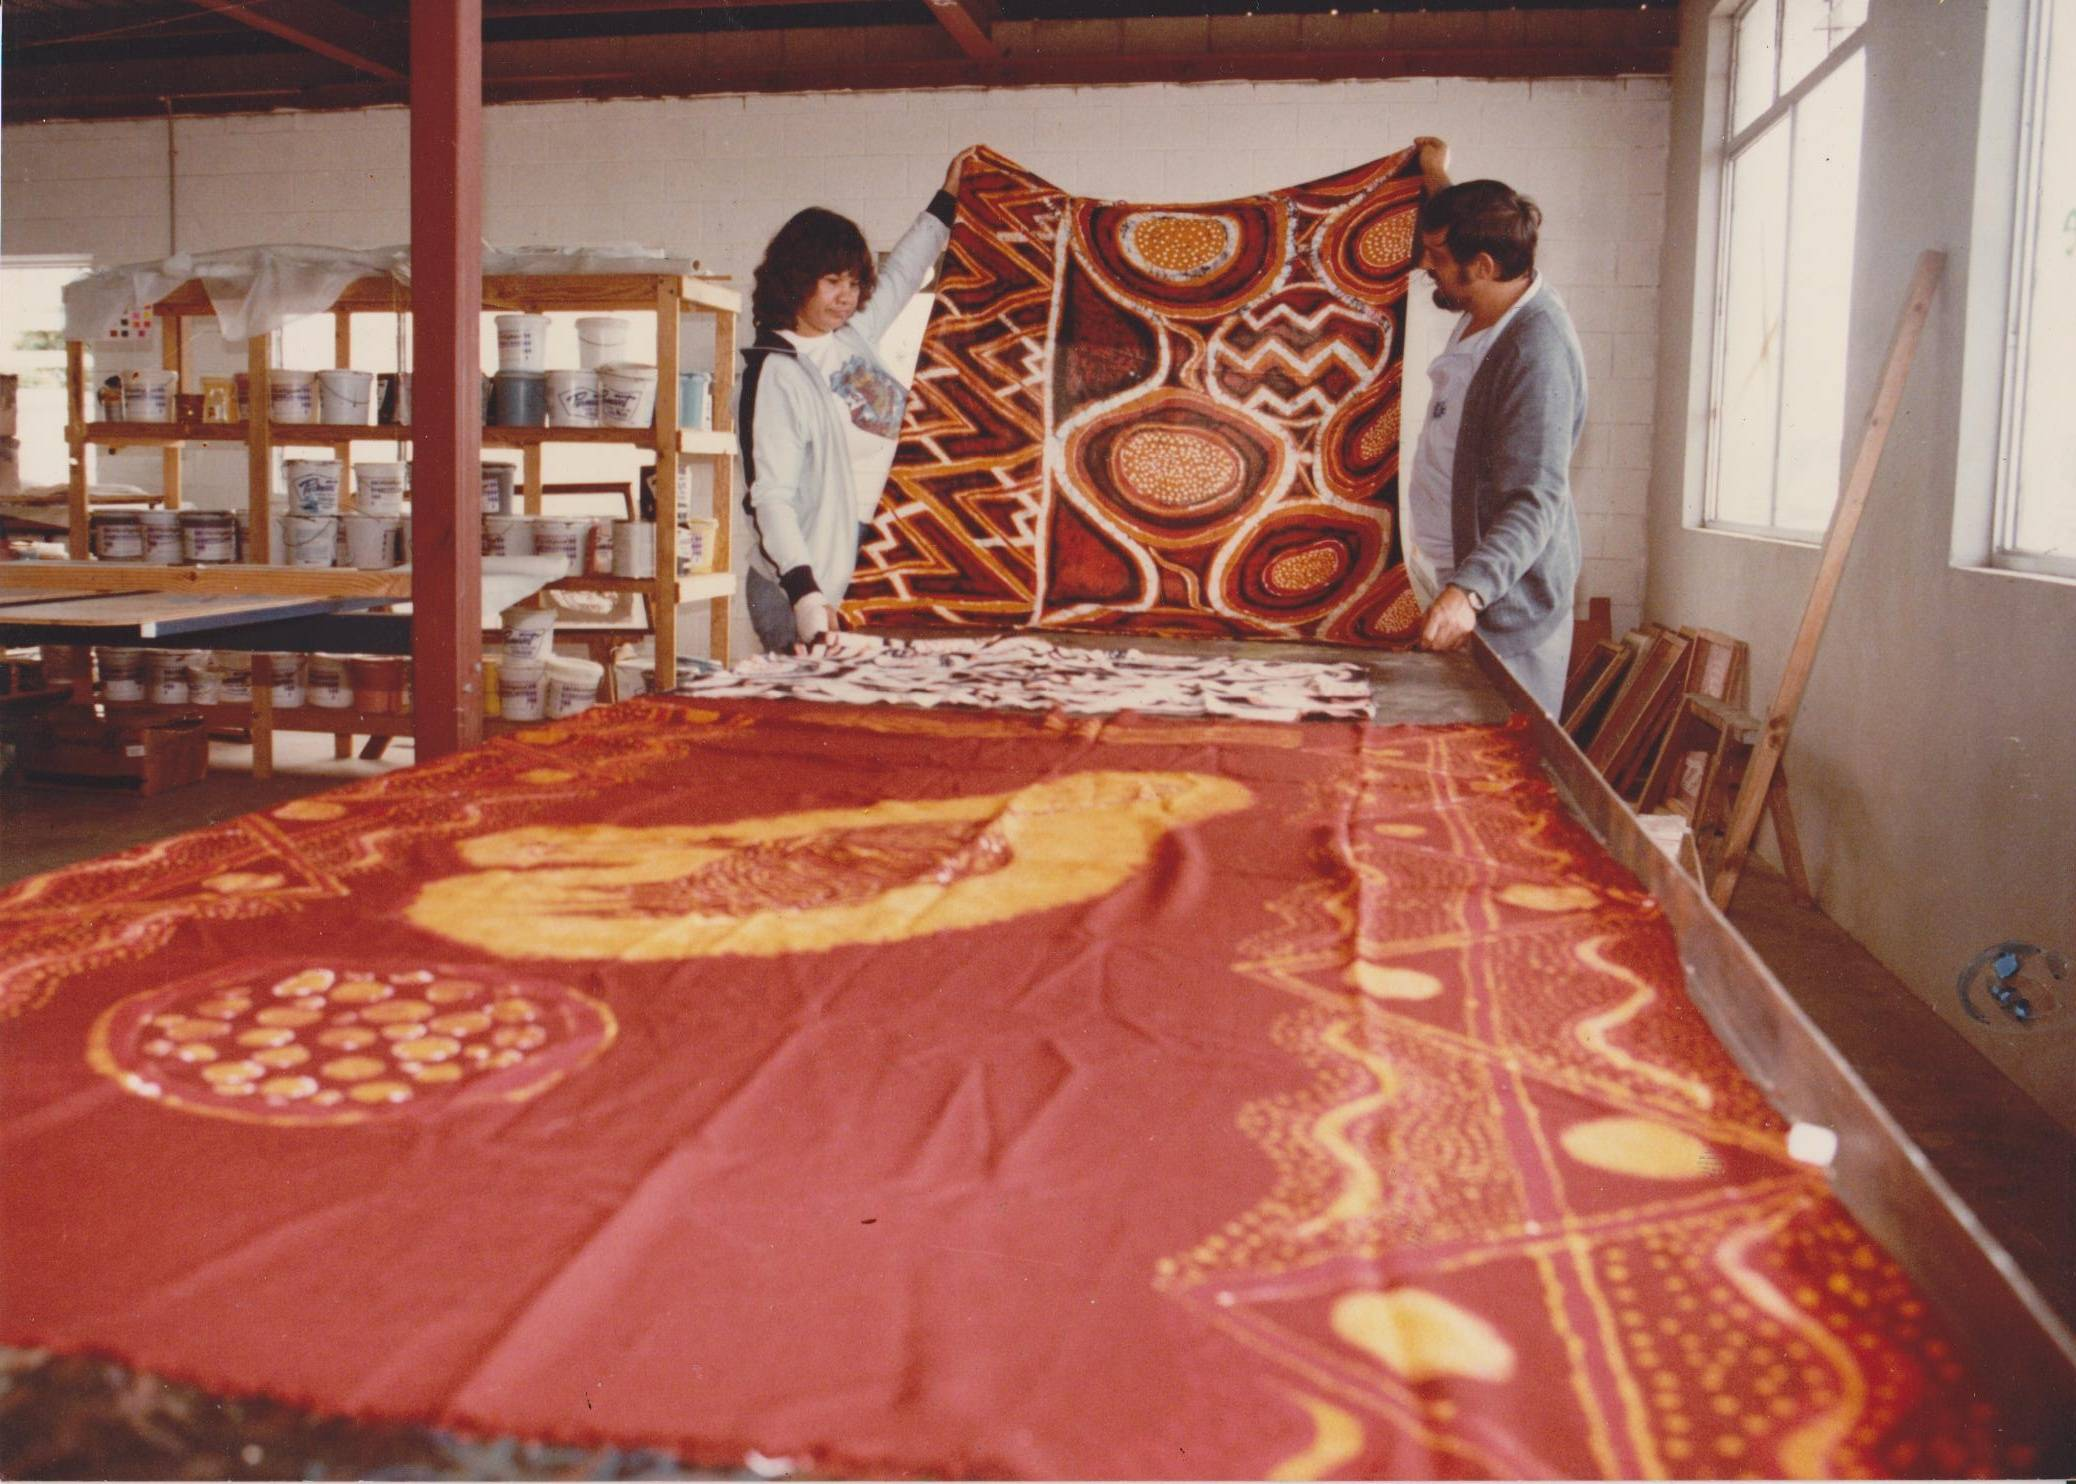 Tom Vudrag with student viewing batiks.